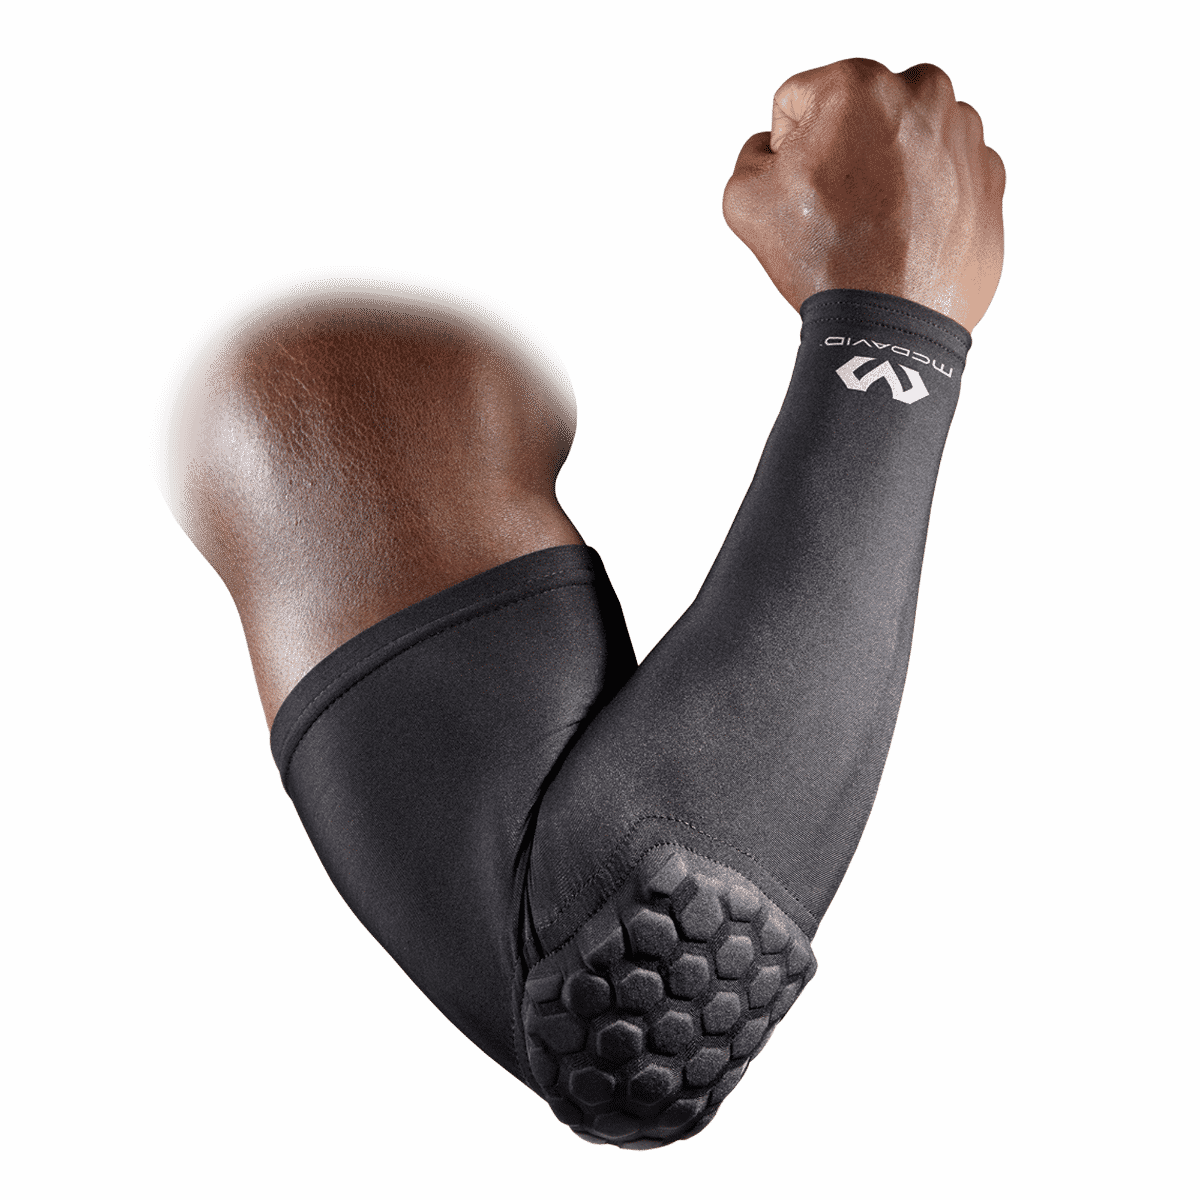 SHOOTER ARM SLEEVE 6500 Elbow Protective Pad BLACK LARGE Details about  /McDAVID HEX